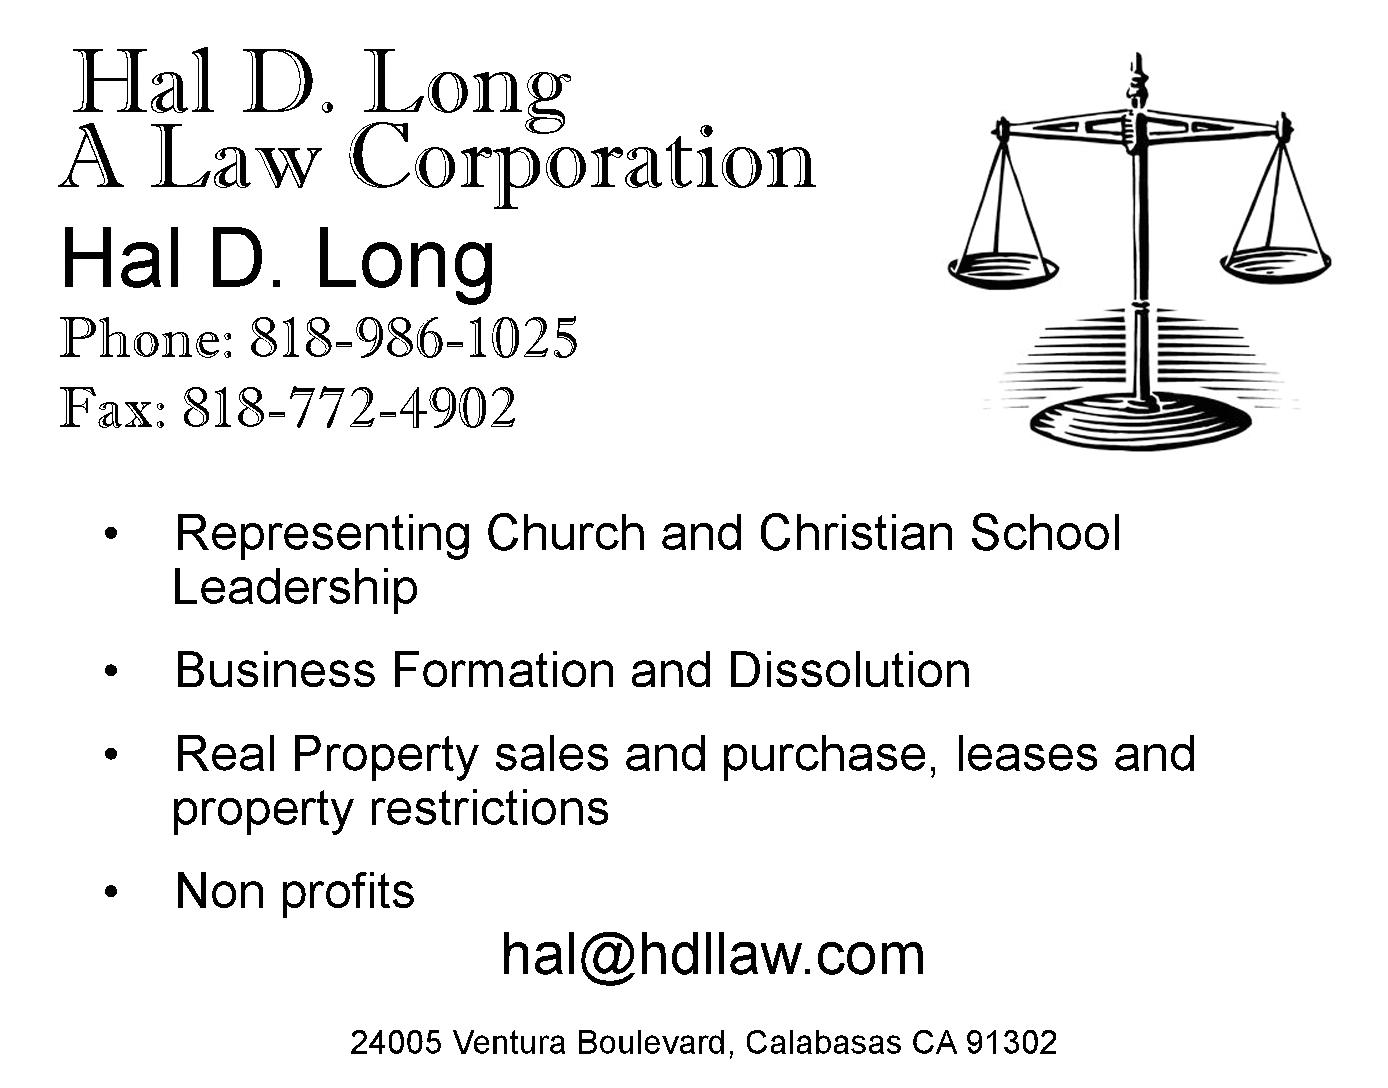 Hal D. Long, A Law Corporation